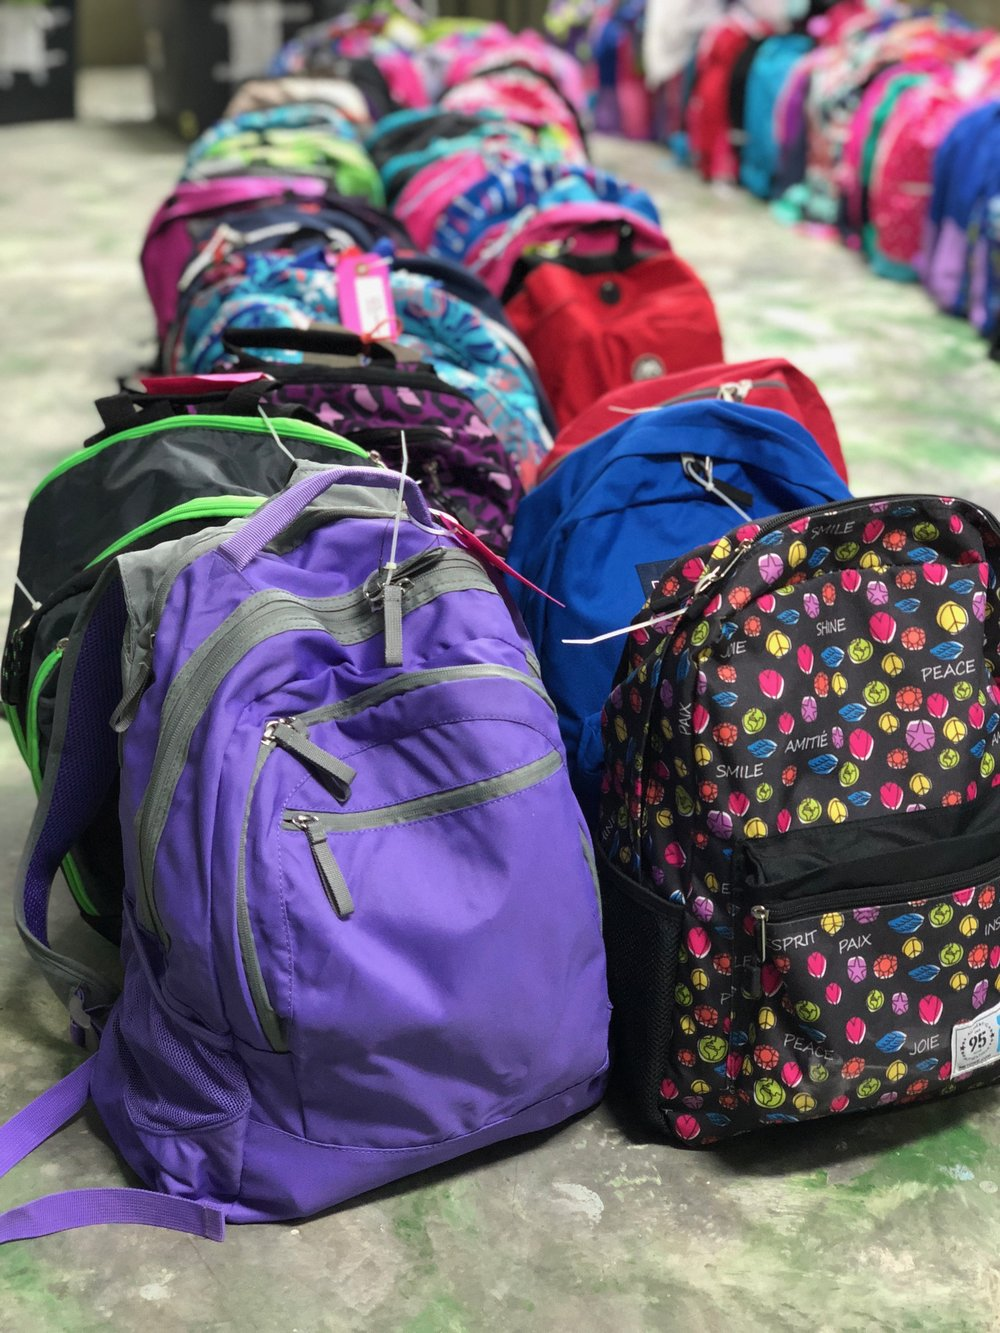 Send a Backpack - We pack and ship over 300-320 backpacks each year to Haiti, Each is made specifically for the needs of each sponsored child to attend school.